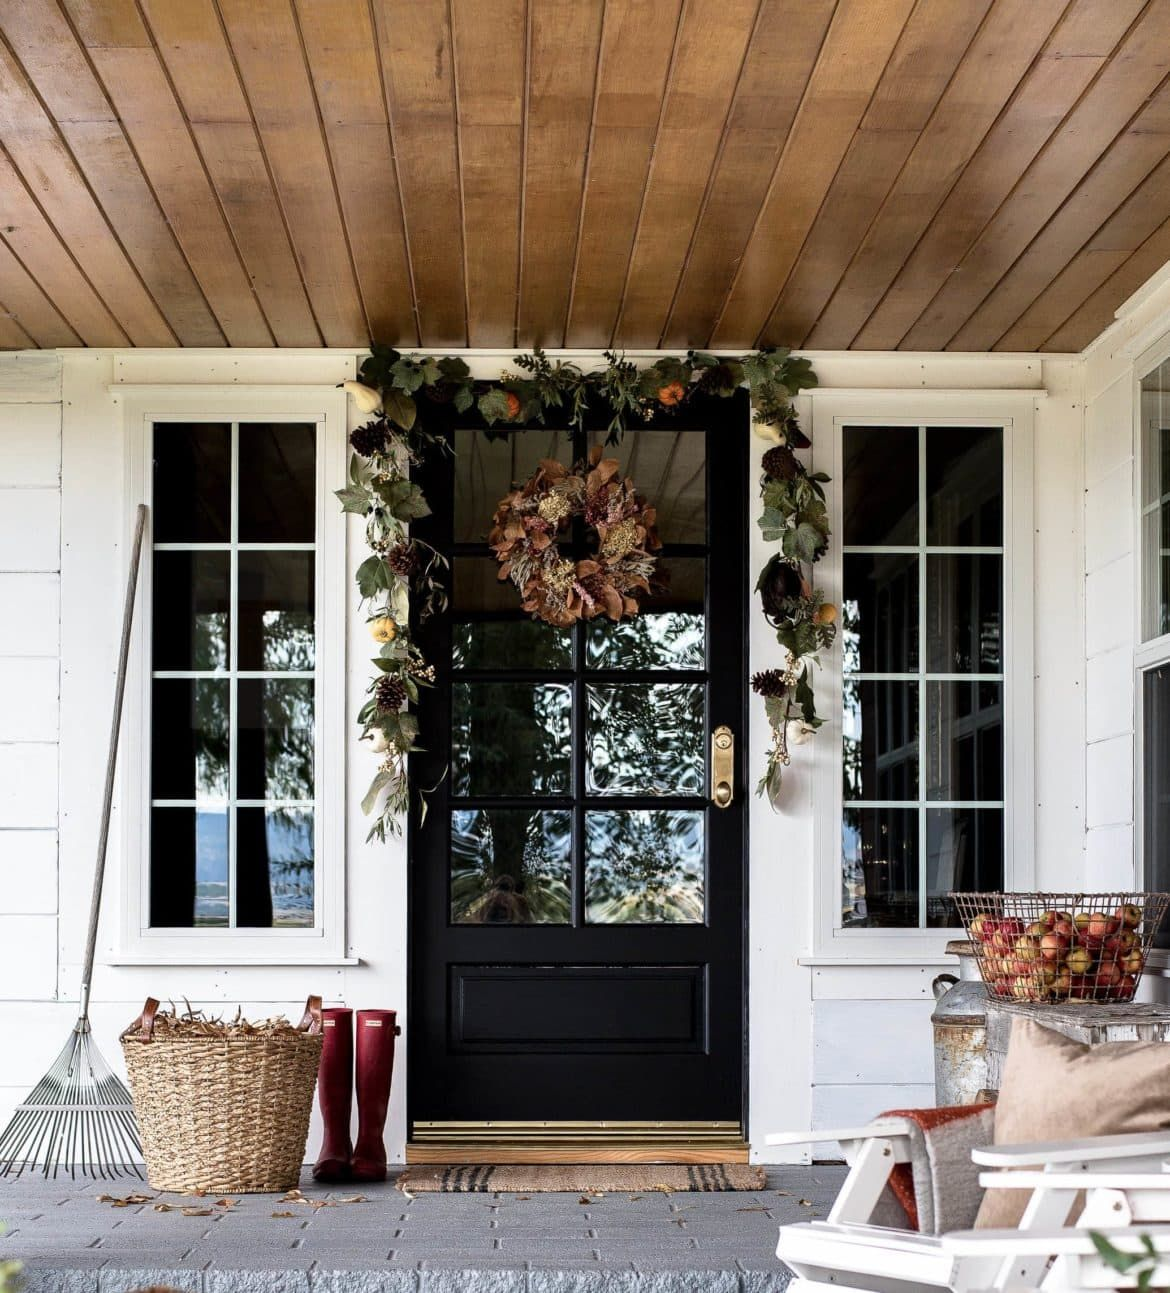 15 Fall Front Porch Decorating Ideas (With Images)